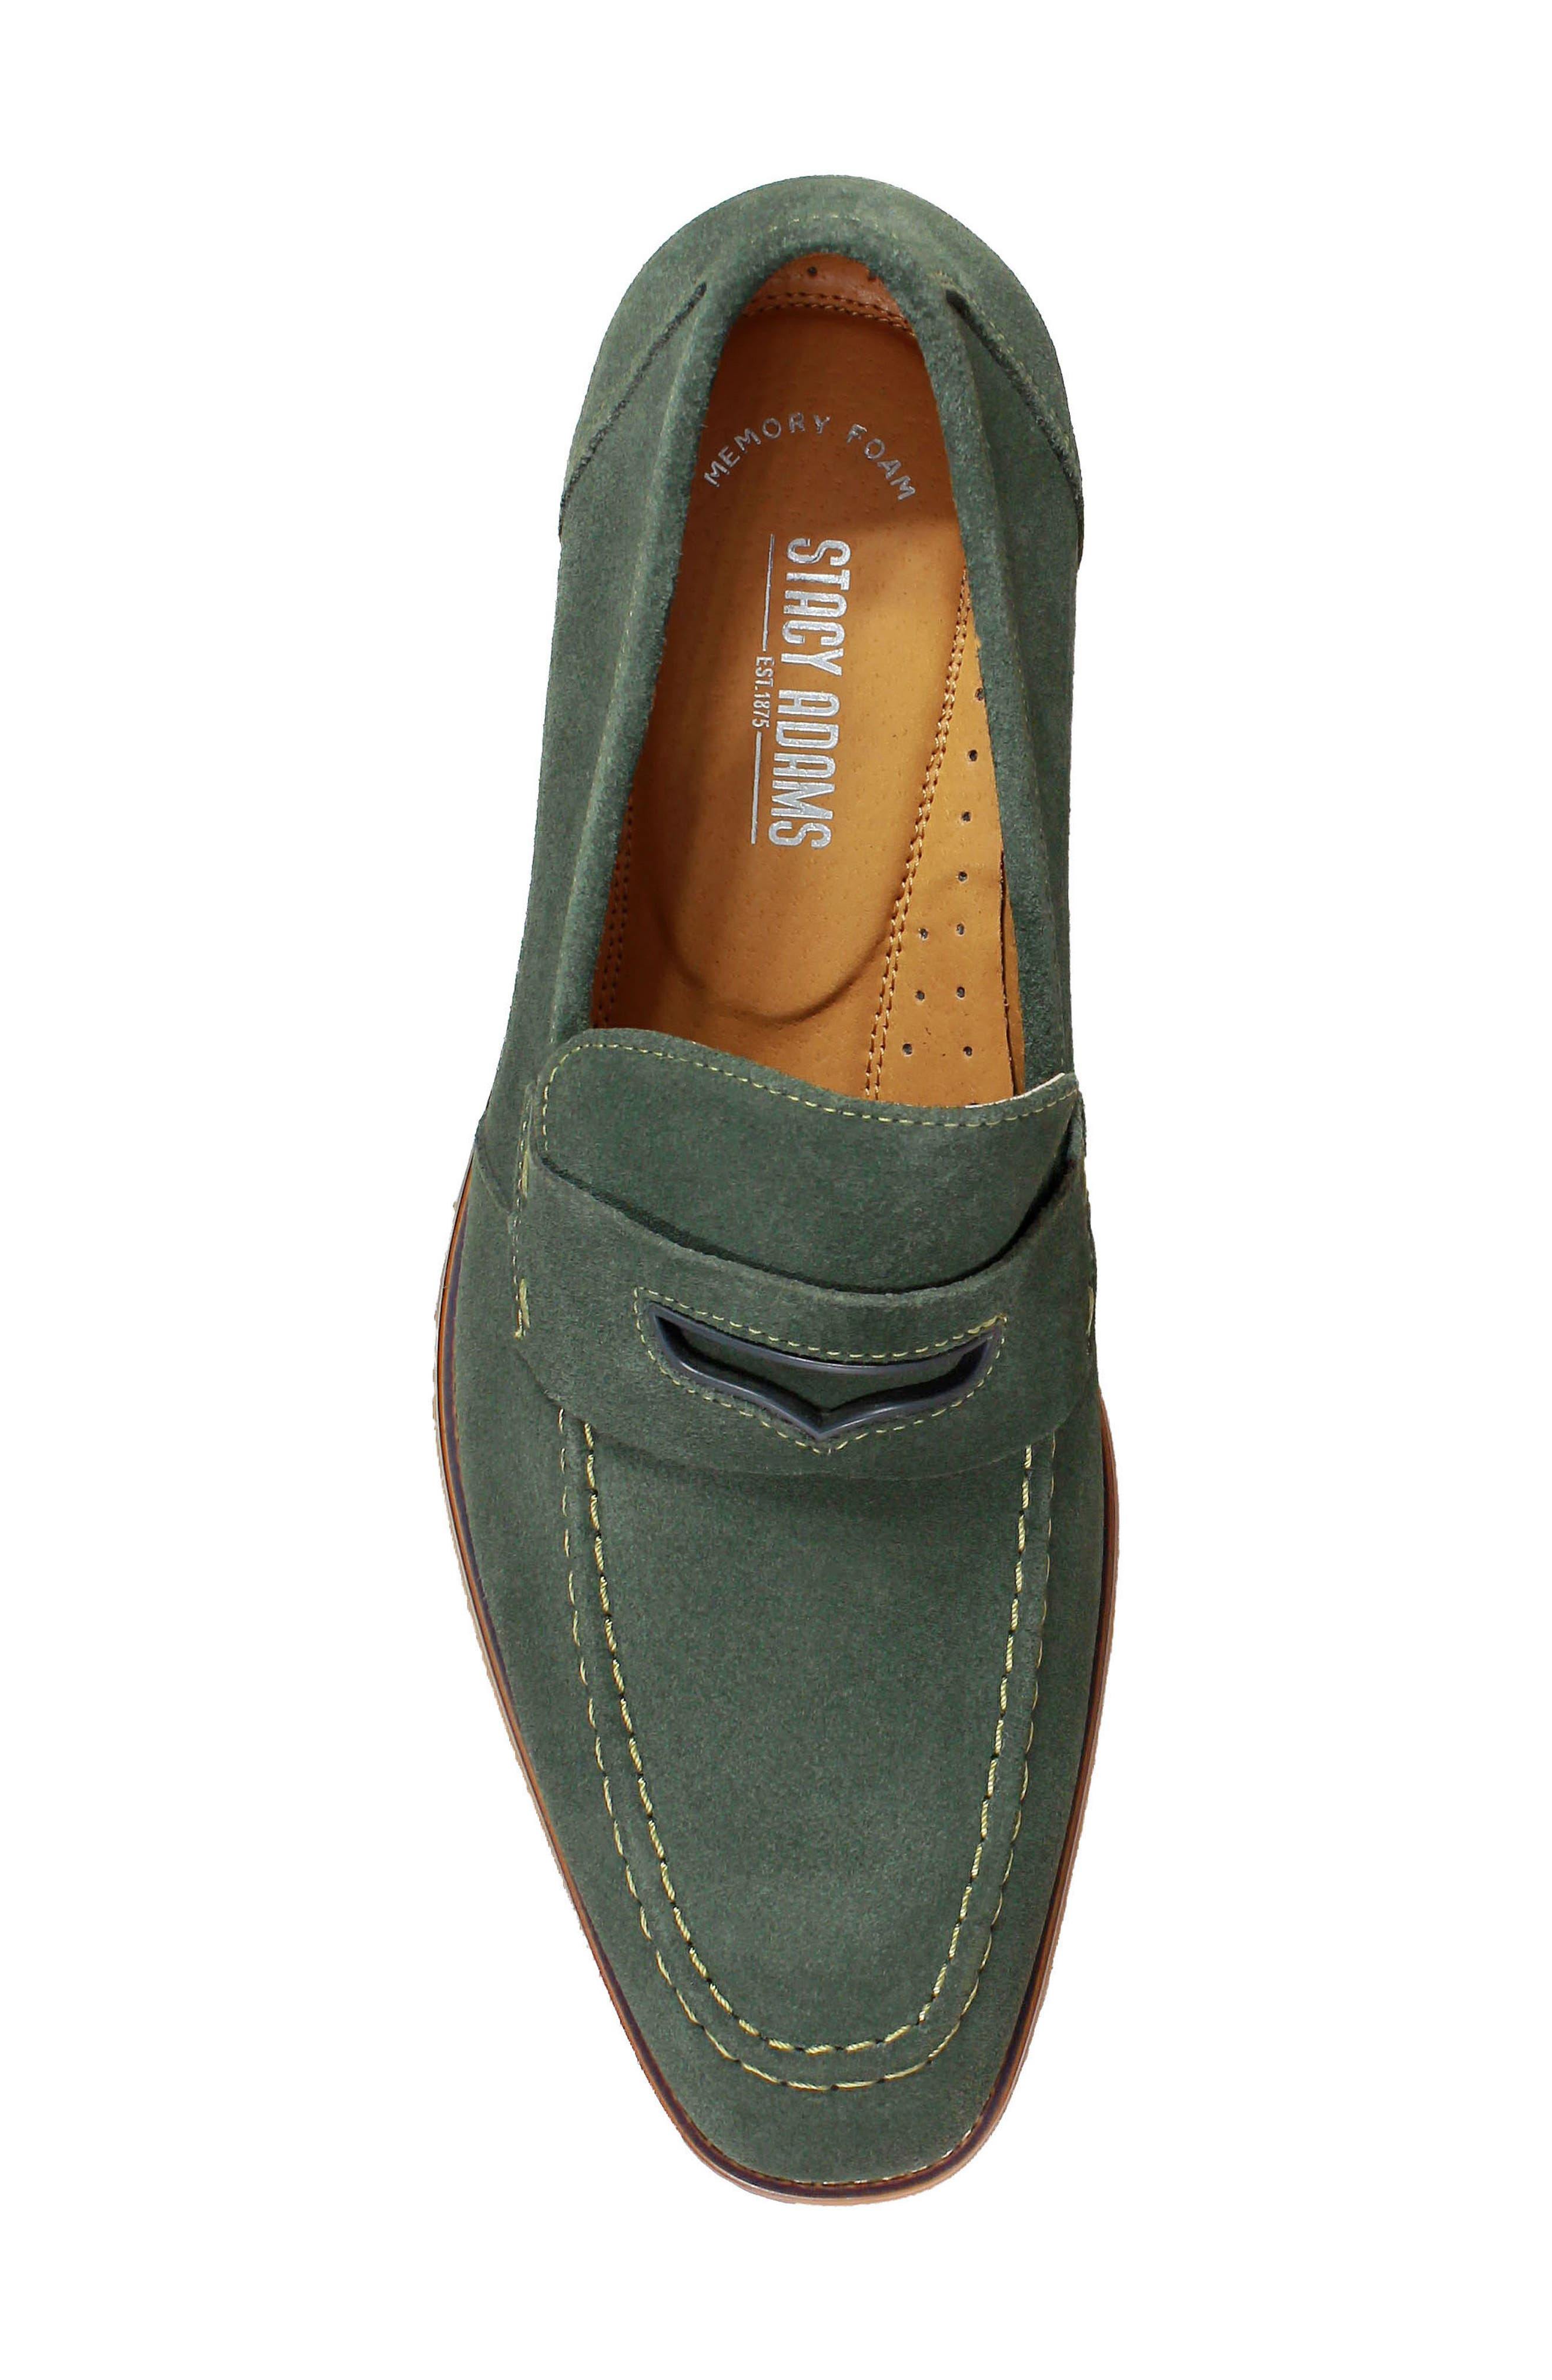 Colfax Apron Toe Penny Loafer,                             Alternate thumbnail 5, color,                             DARK GREEN SUEDE